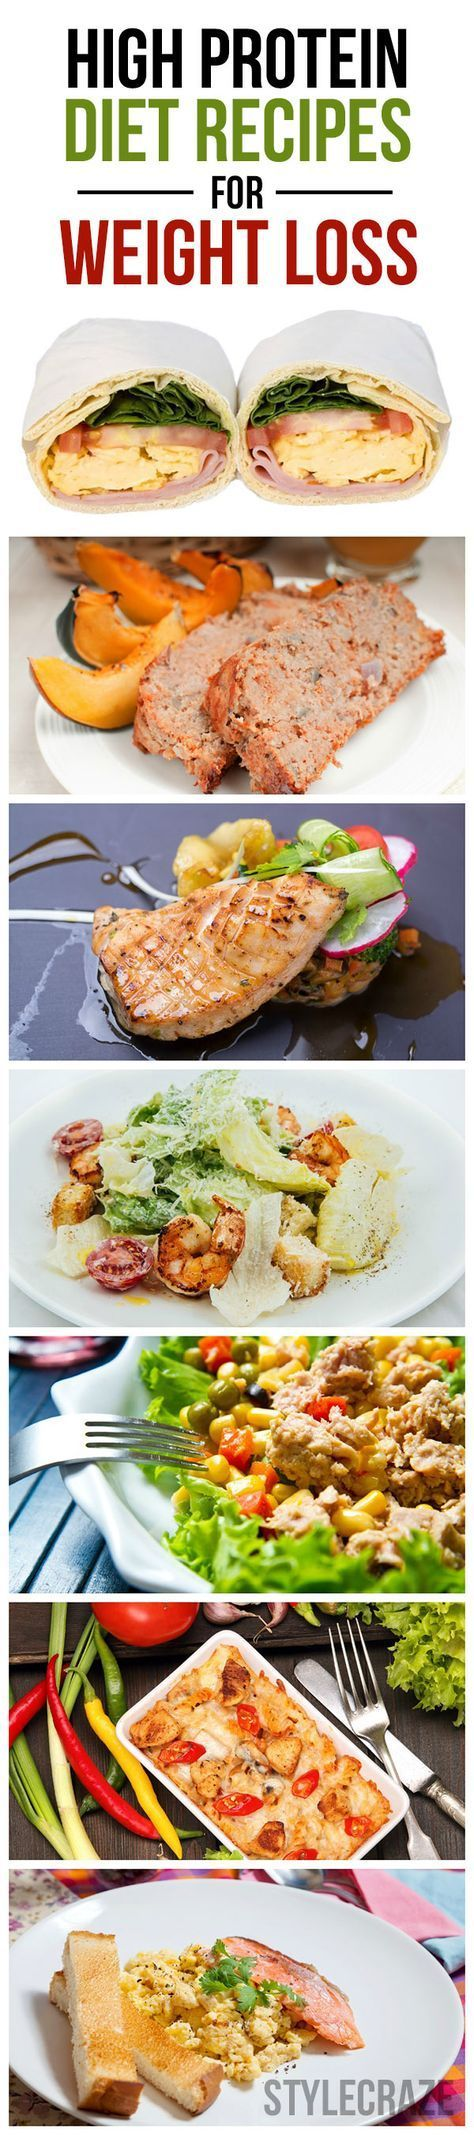 7 Best High Protein Diet Recipes For Weight Loss | Posted By: AdvancedWeightLossTips.com http://eatdojo.com/high-protein-foods-weight-loss/